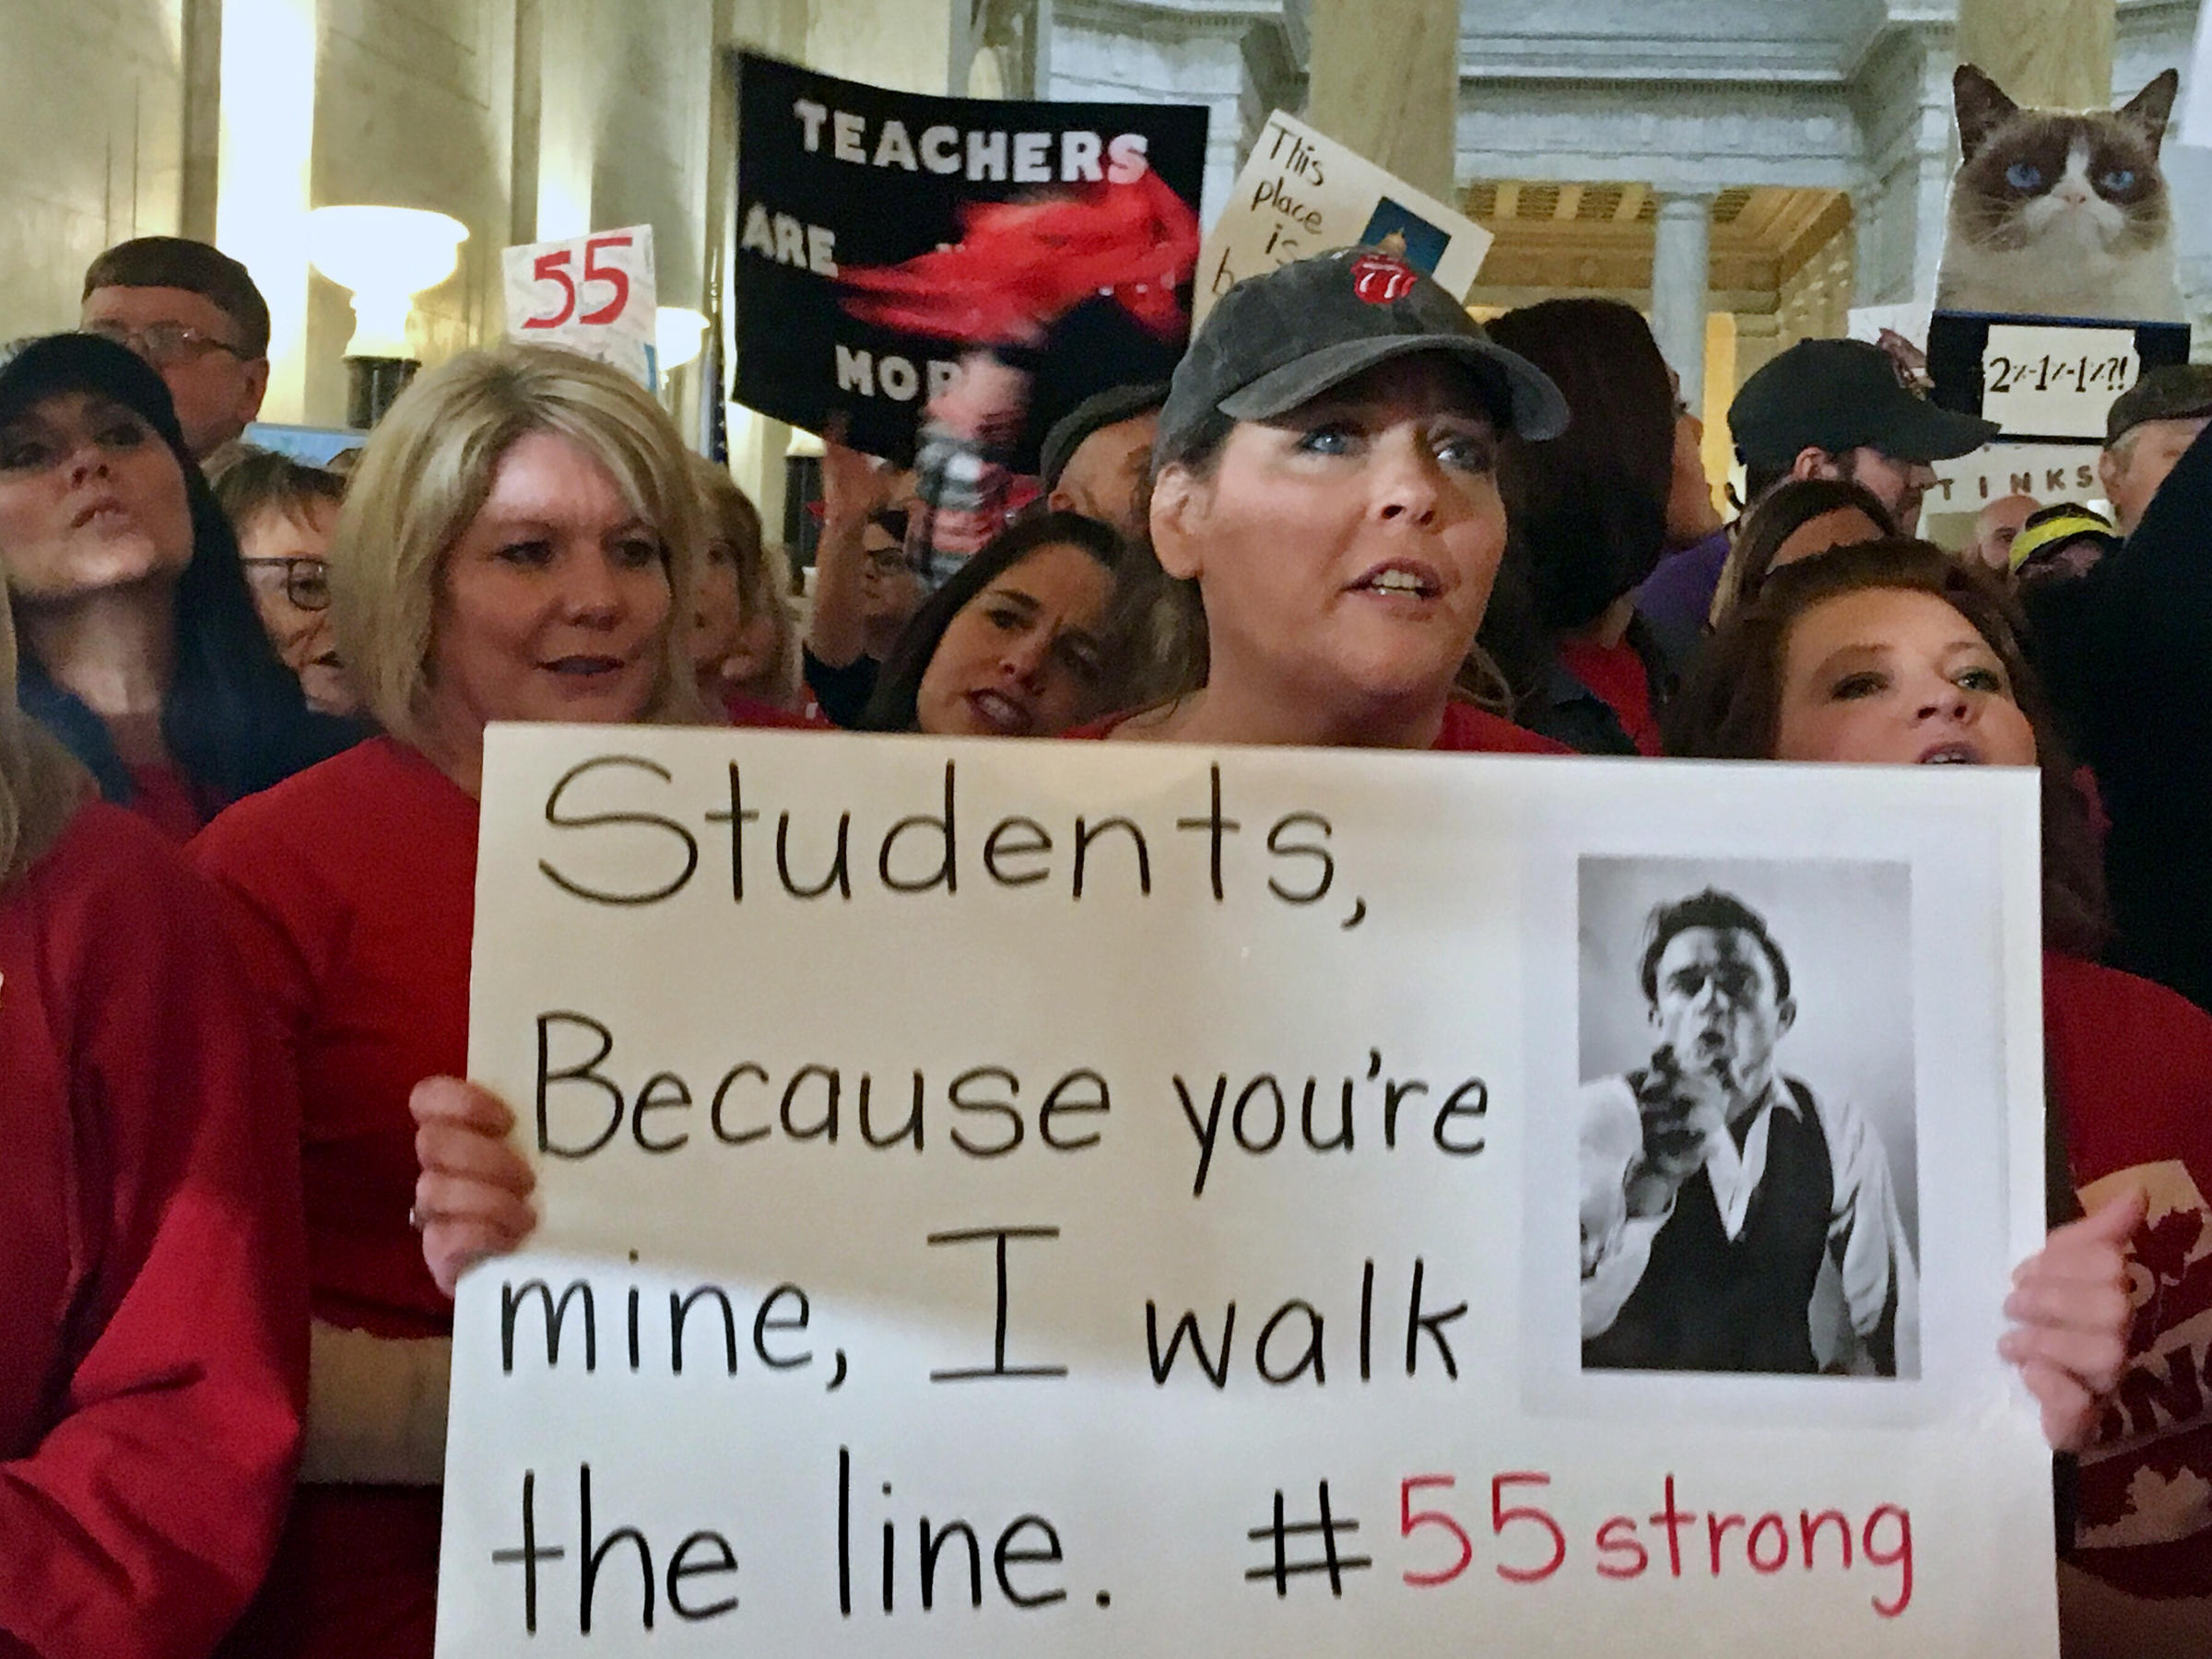 Schools close as teachers protest for better pay, health insurance